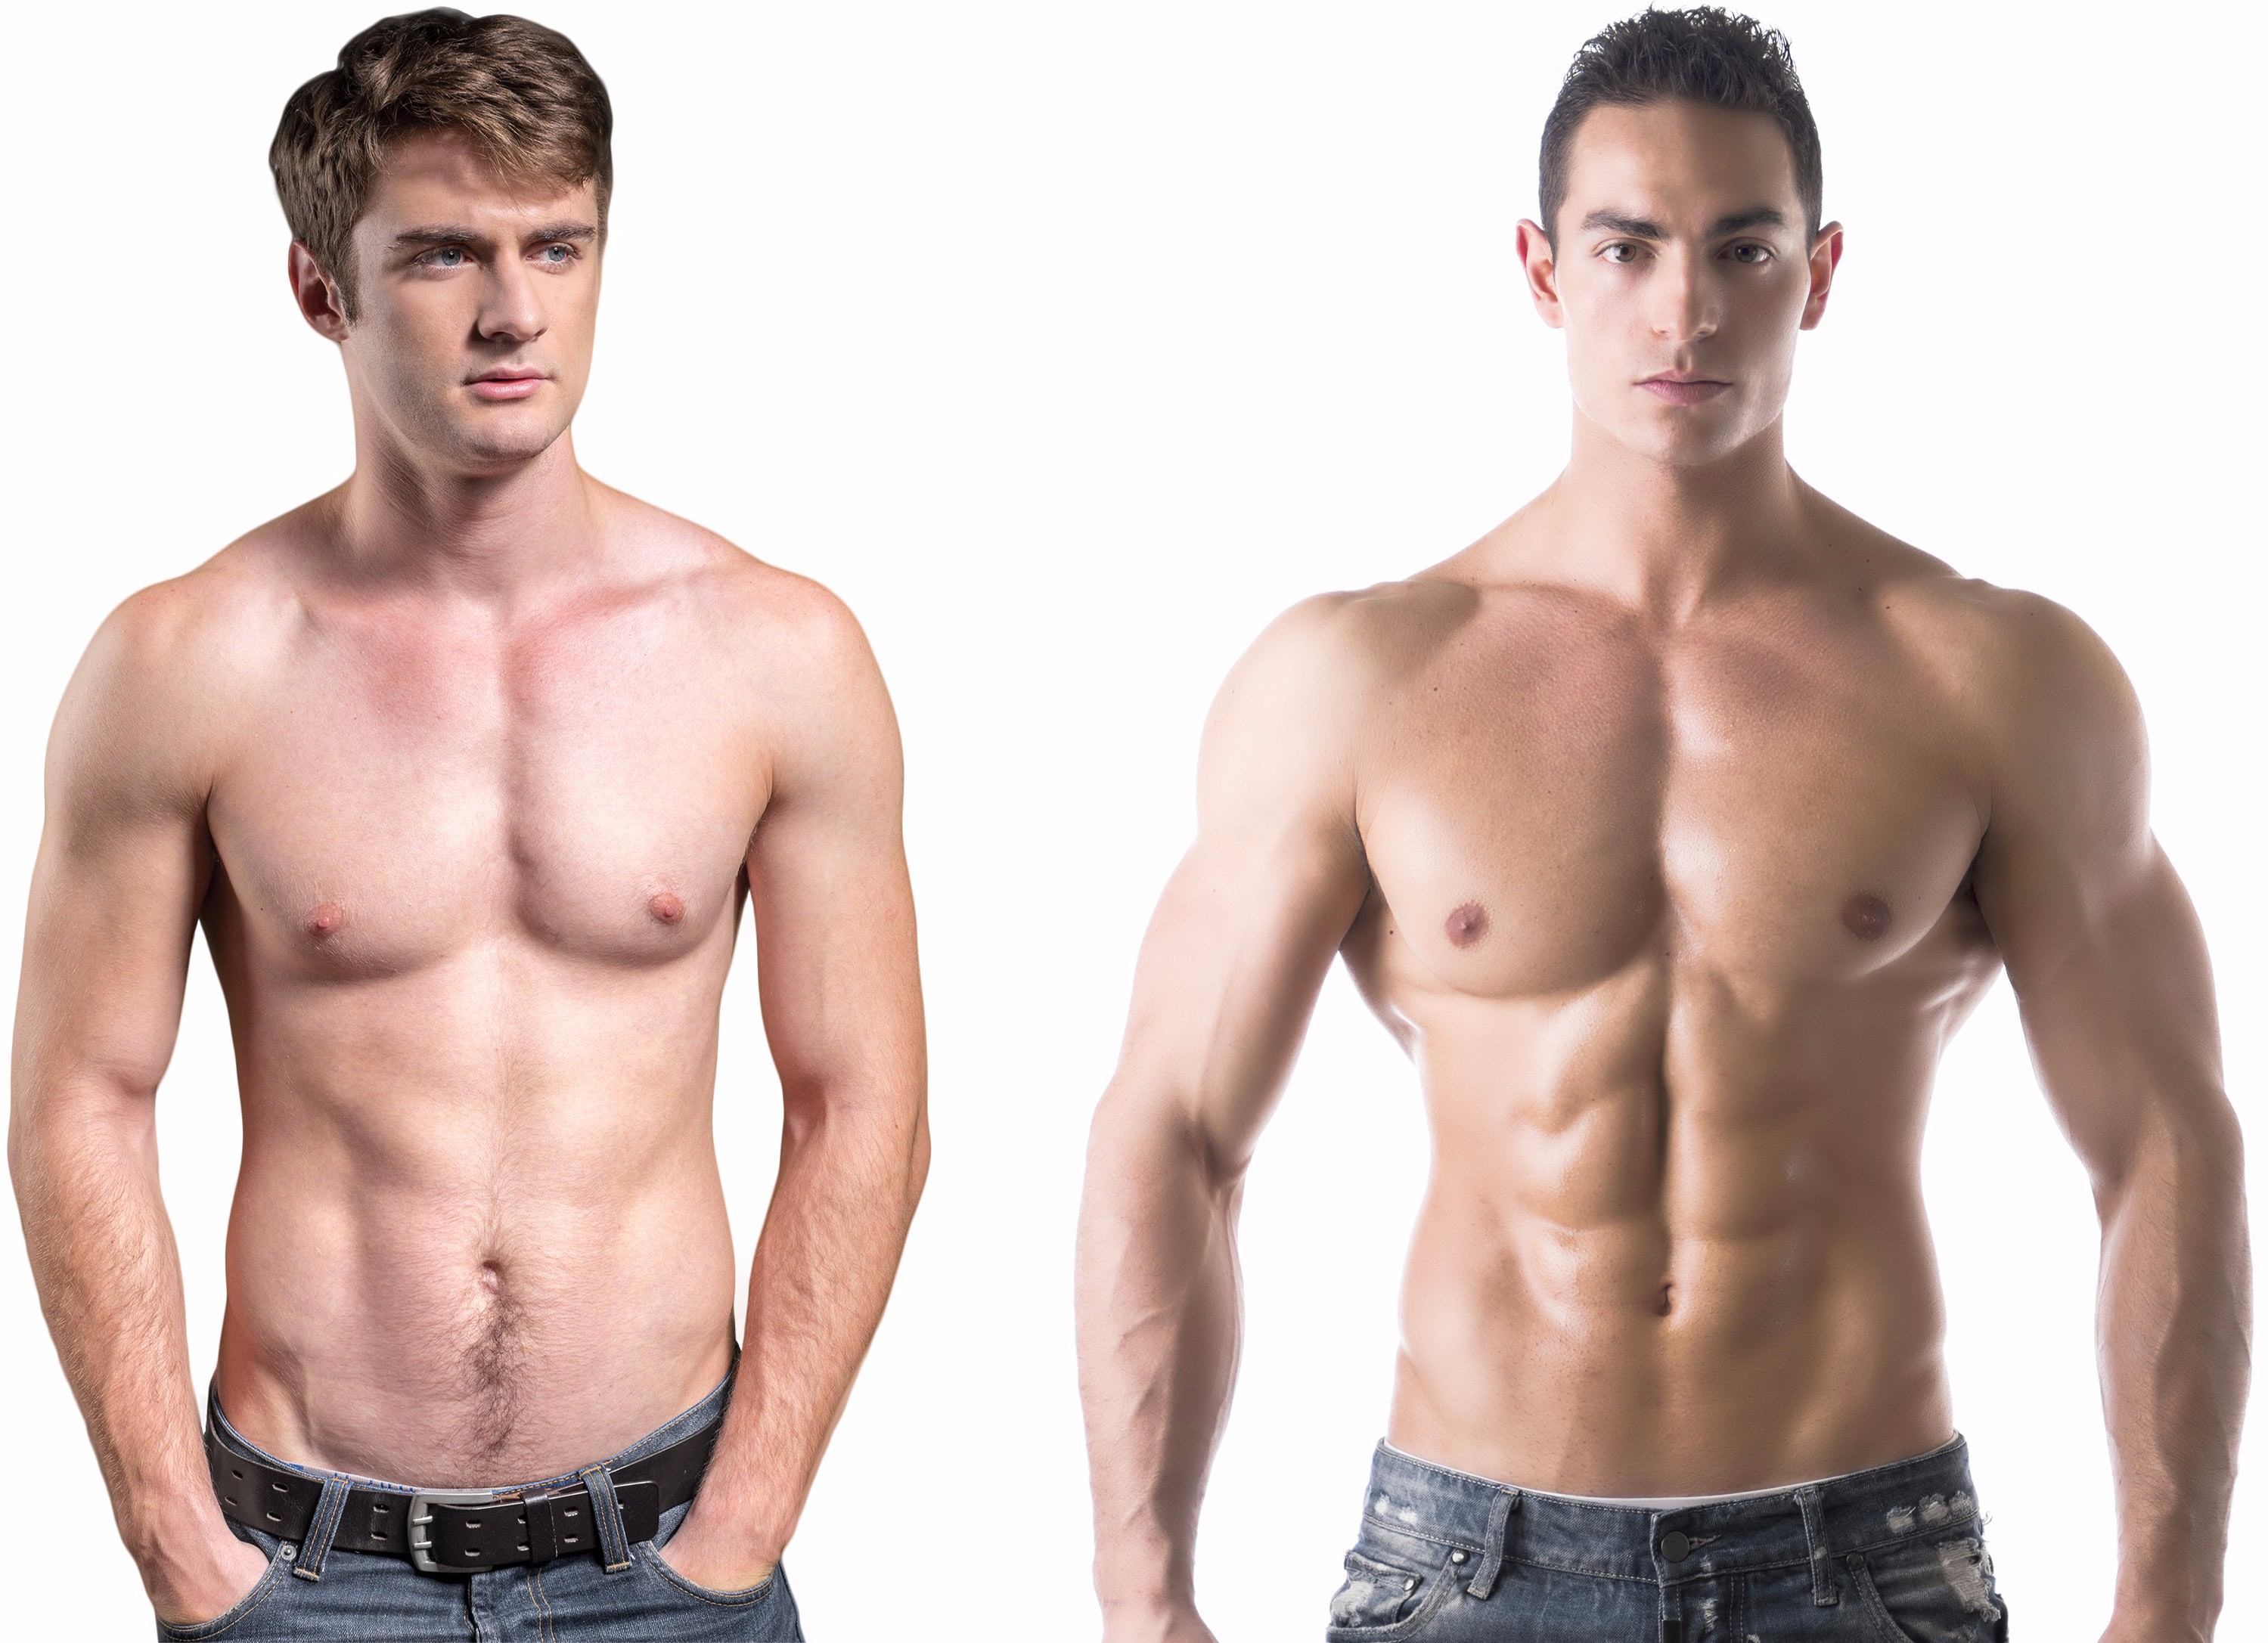 Male physique comparison